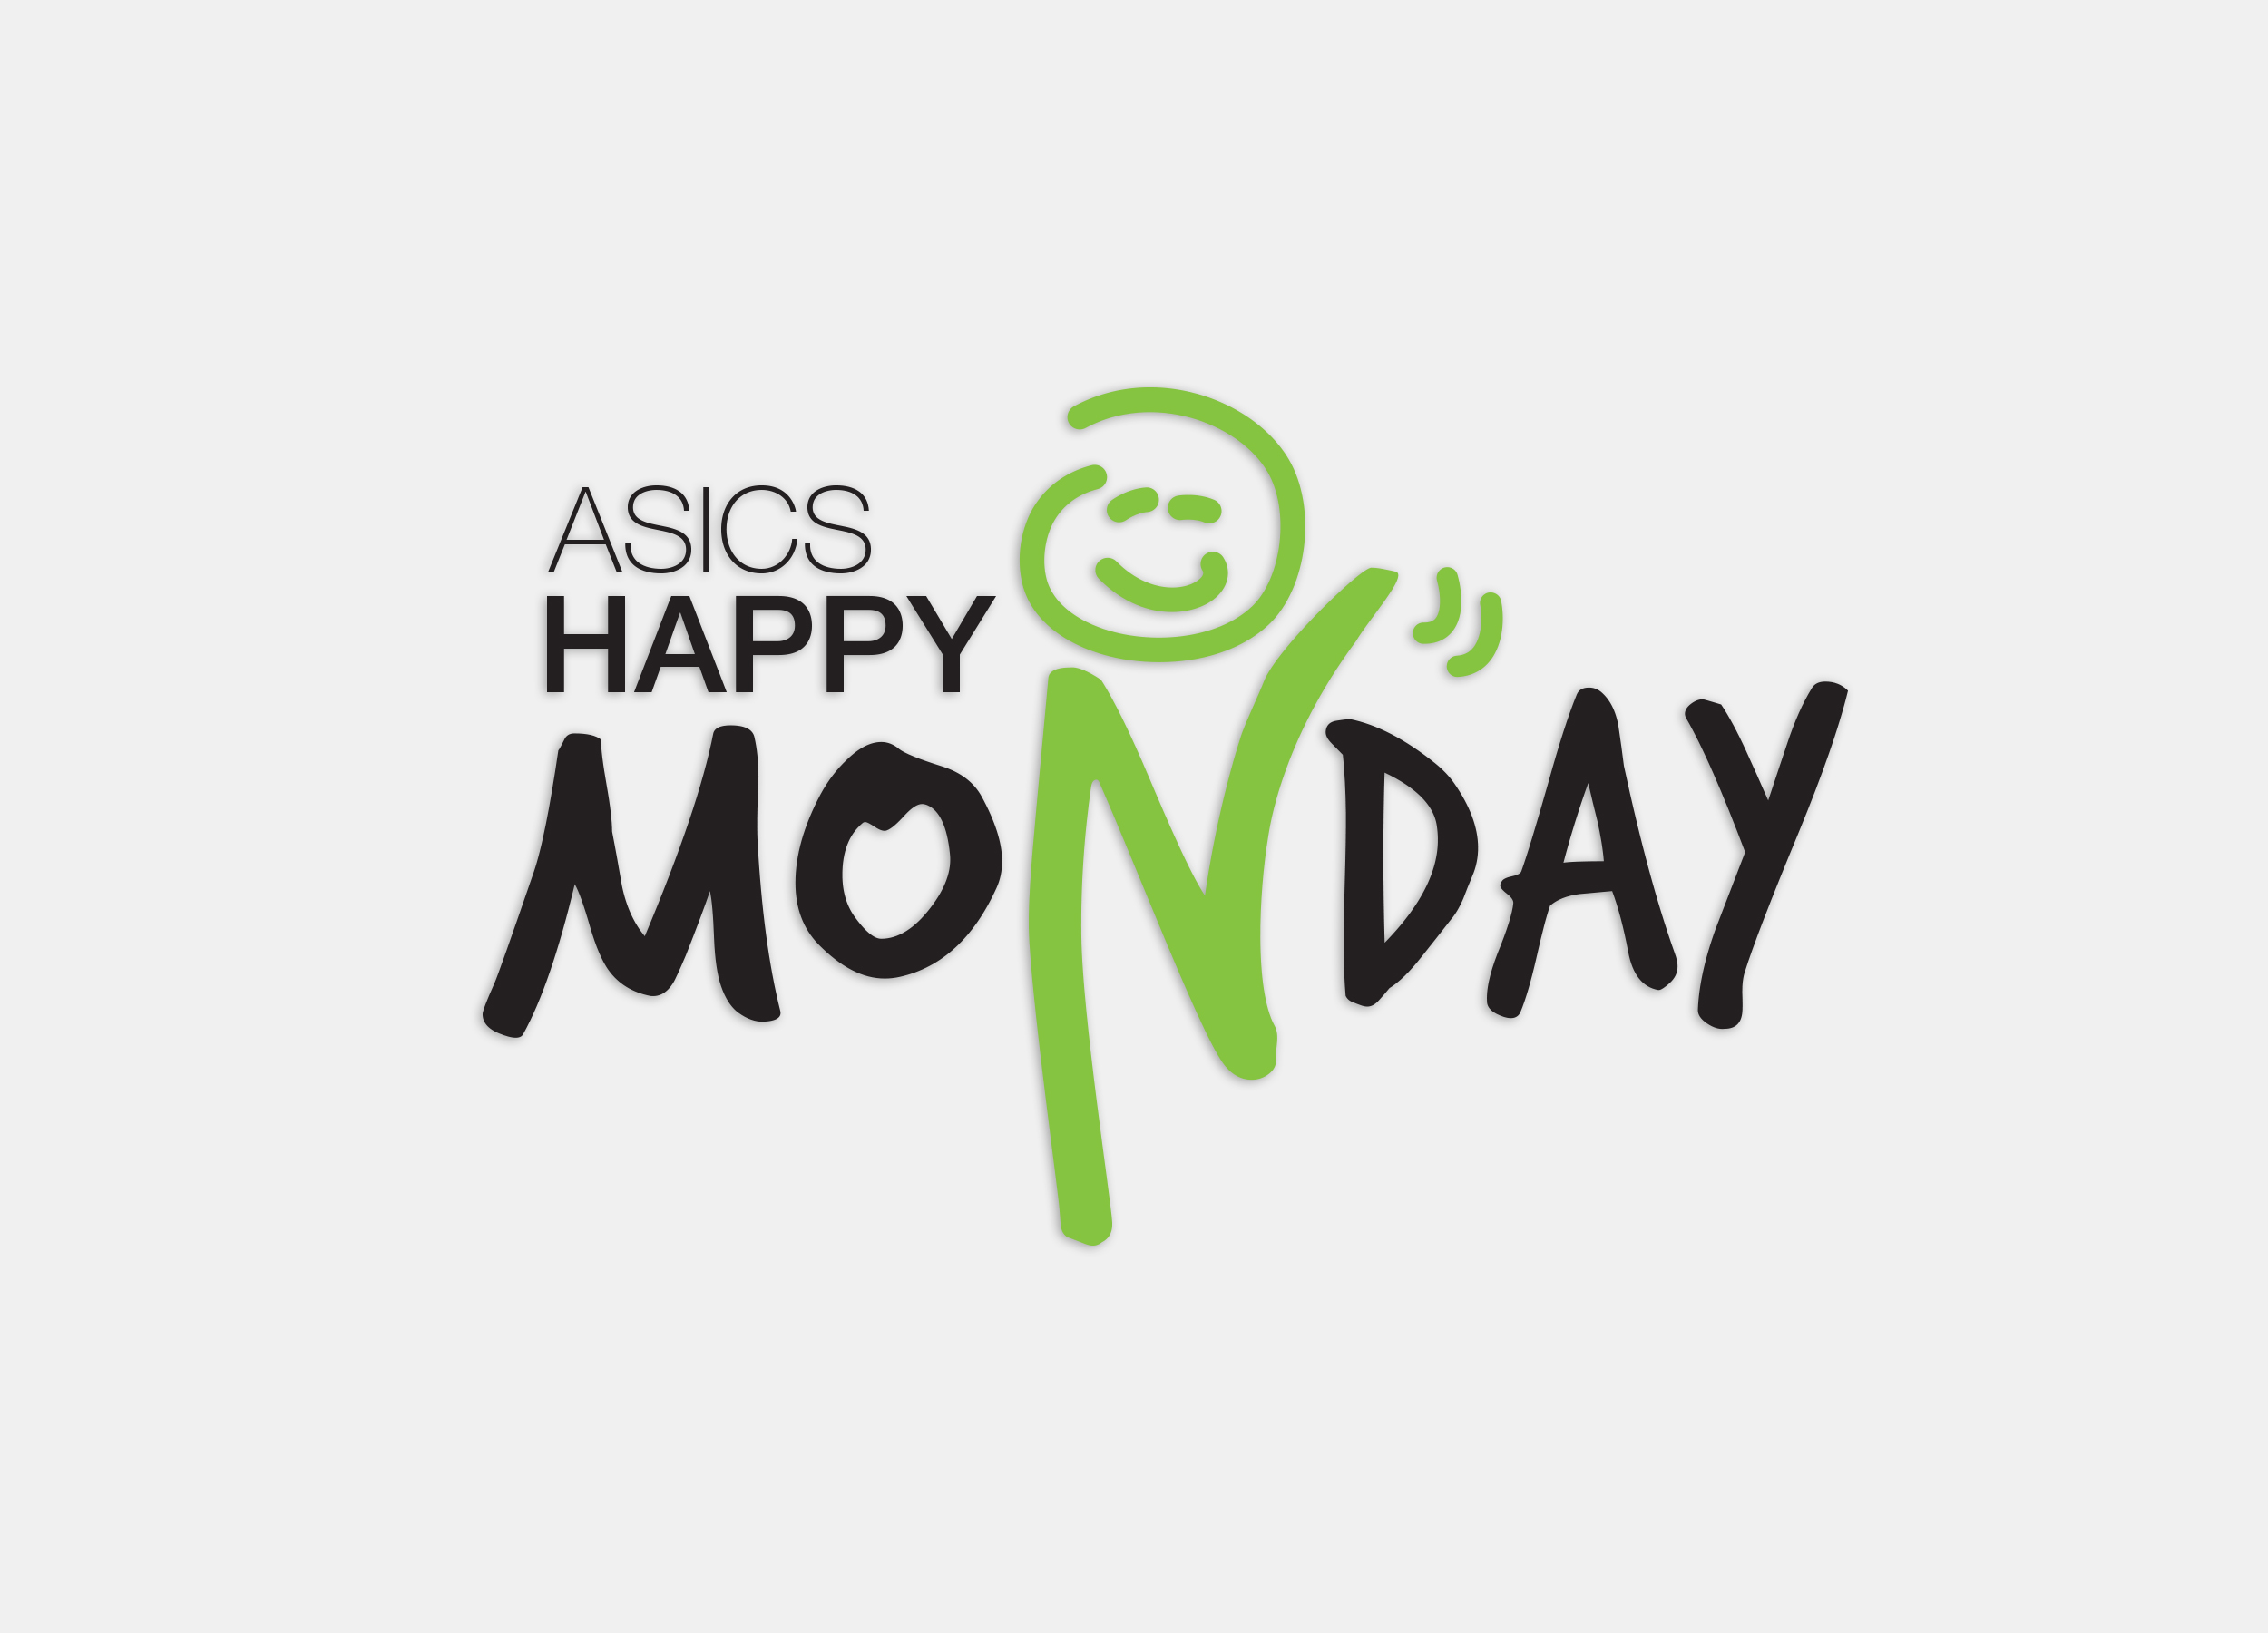 ASICS Happy Monday Event Logo